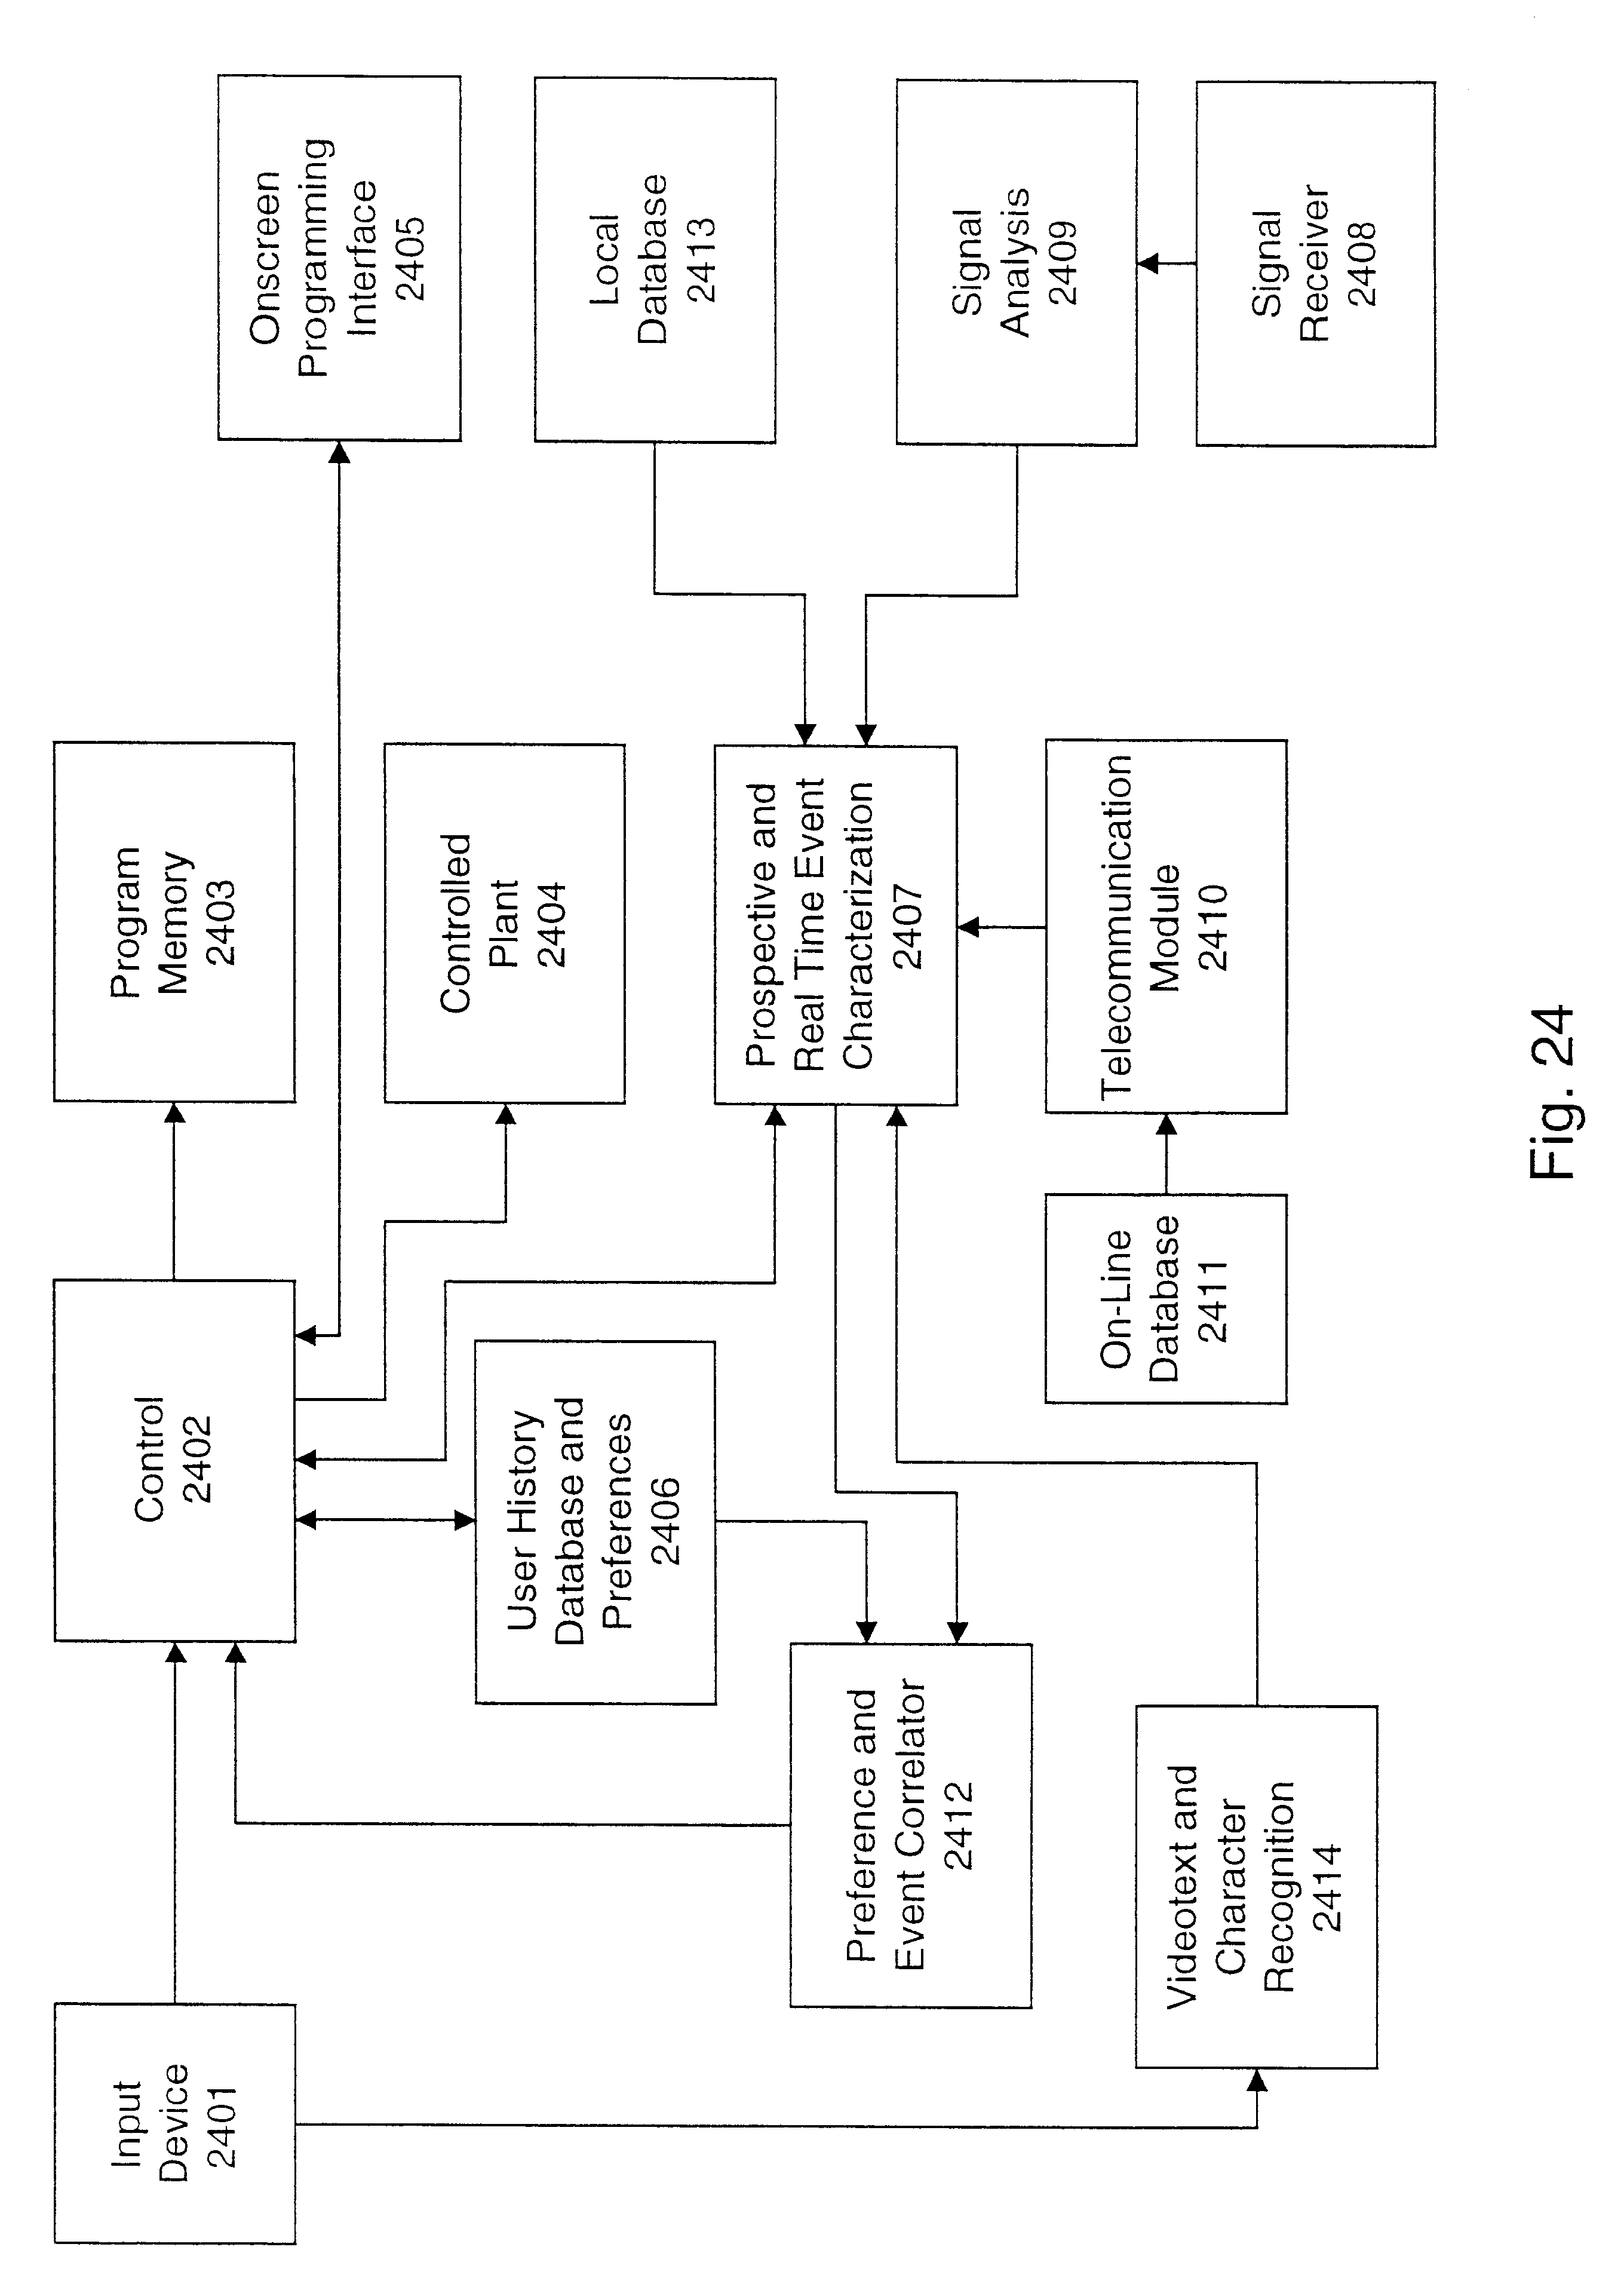 Patent Us 6400996 B1 Fig Schematic Diagram Of A Ballmill Sourcearmstrong 0 Petitions